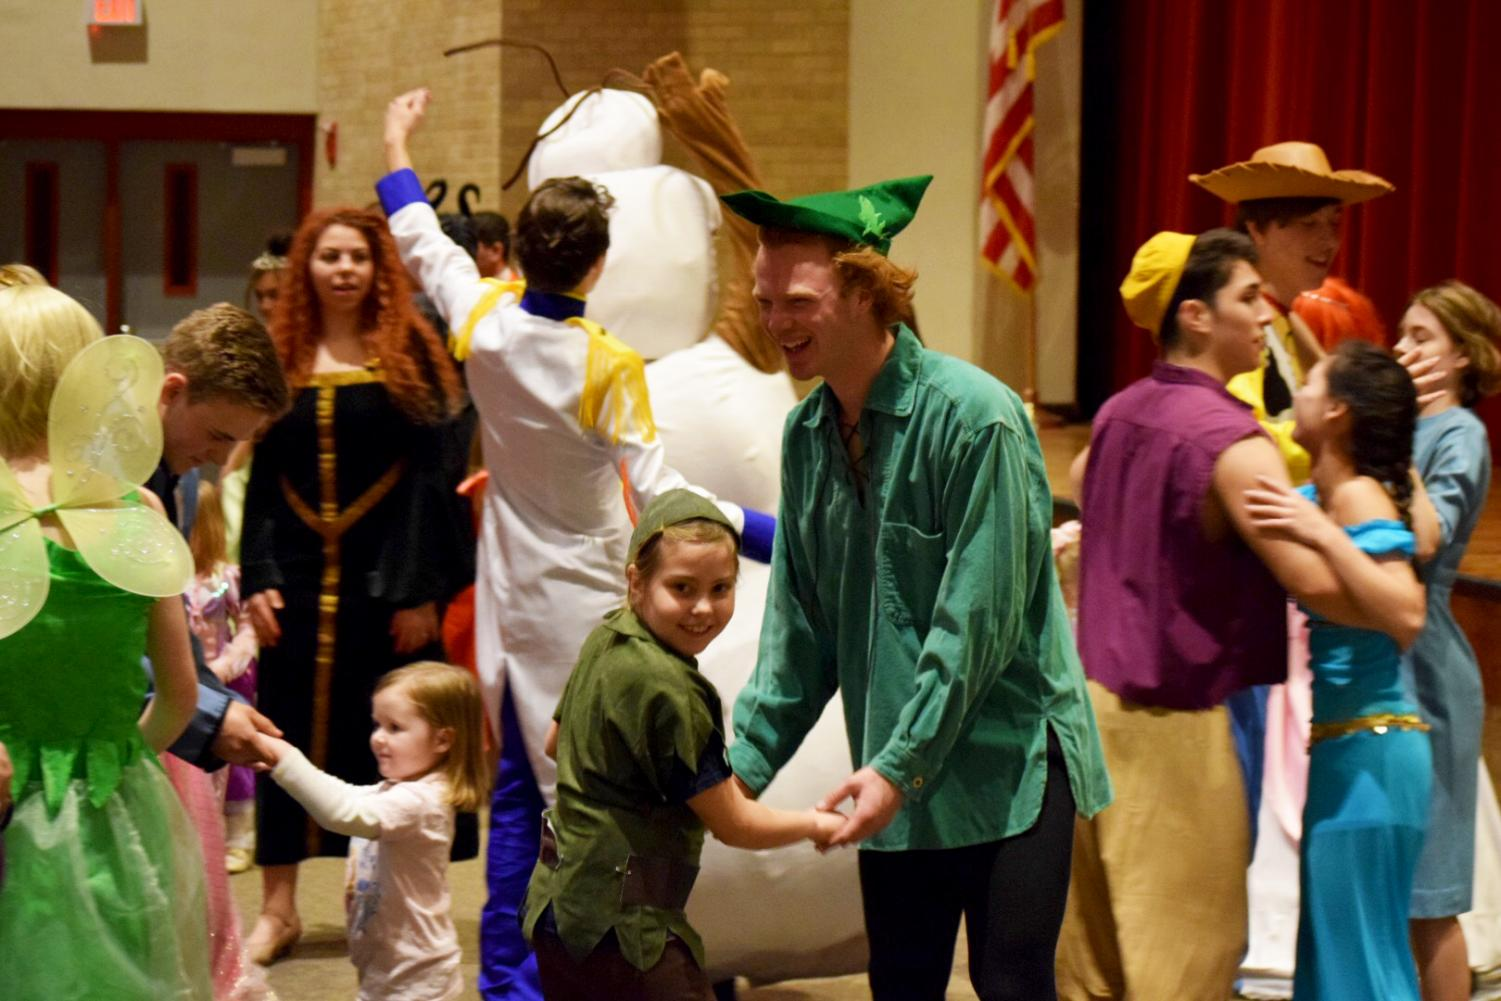 Senior Brendan Coomler waltzes with a girl that's dressed as the Disney character Peter Pan during Tea With a Princess on Sunday Feb. 4. Coomler played the role of Peter Pan as well.